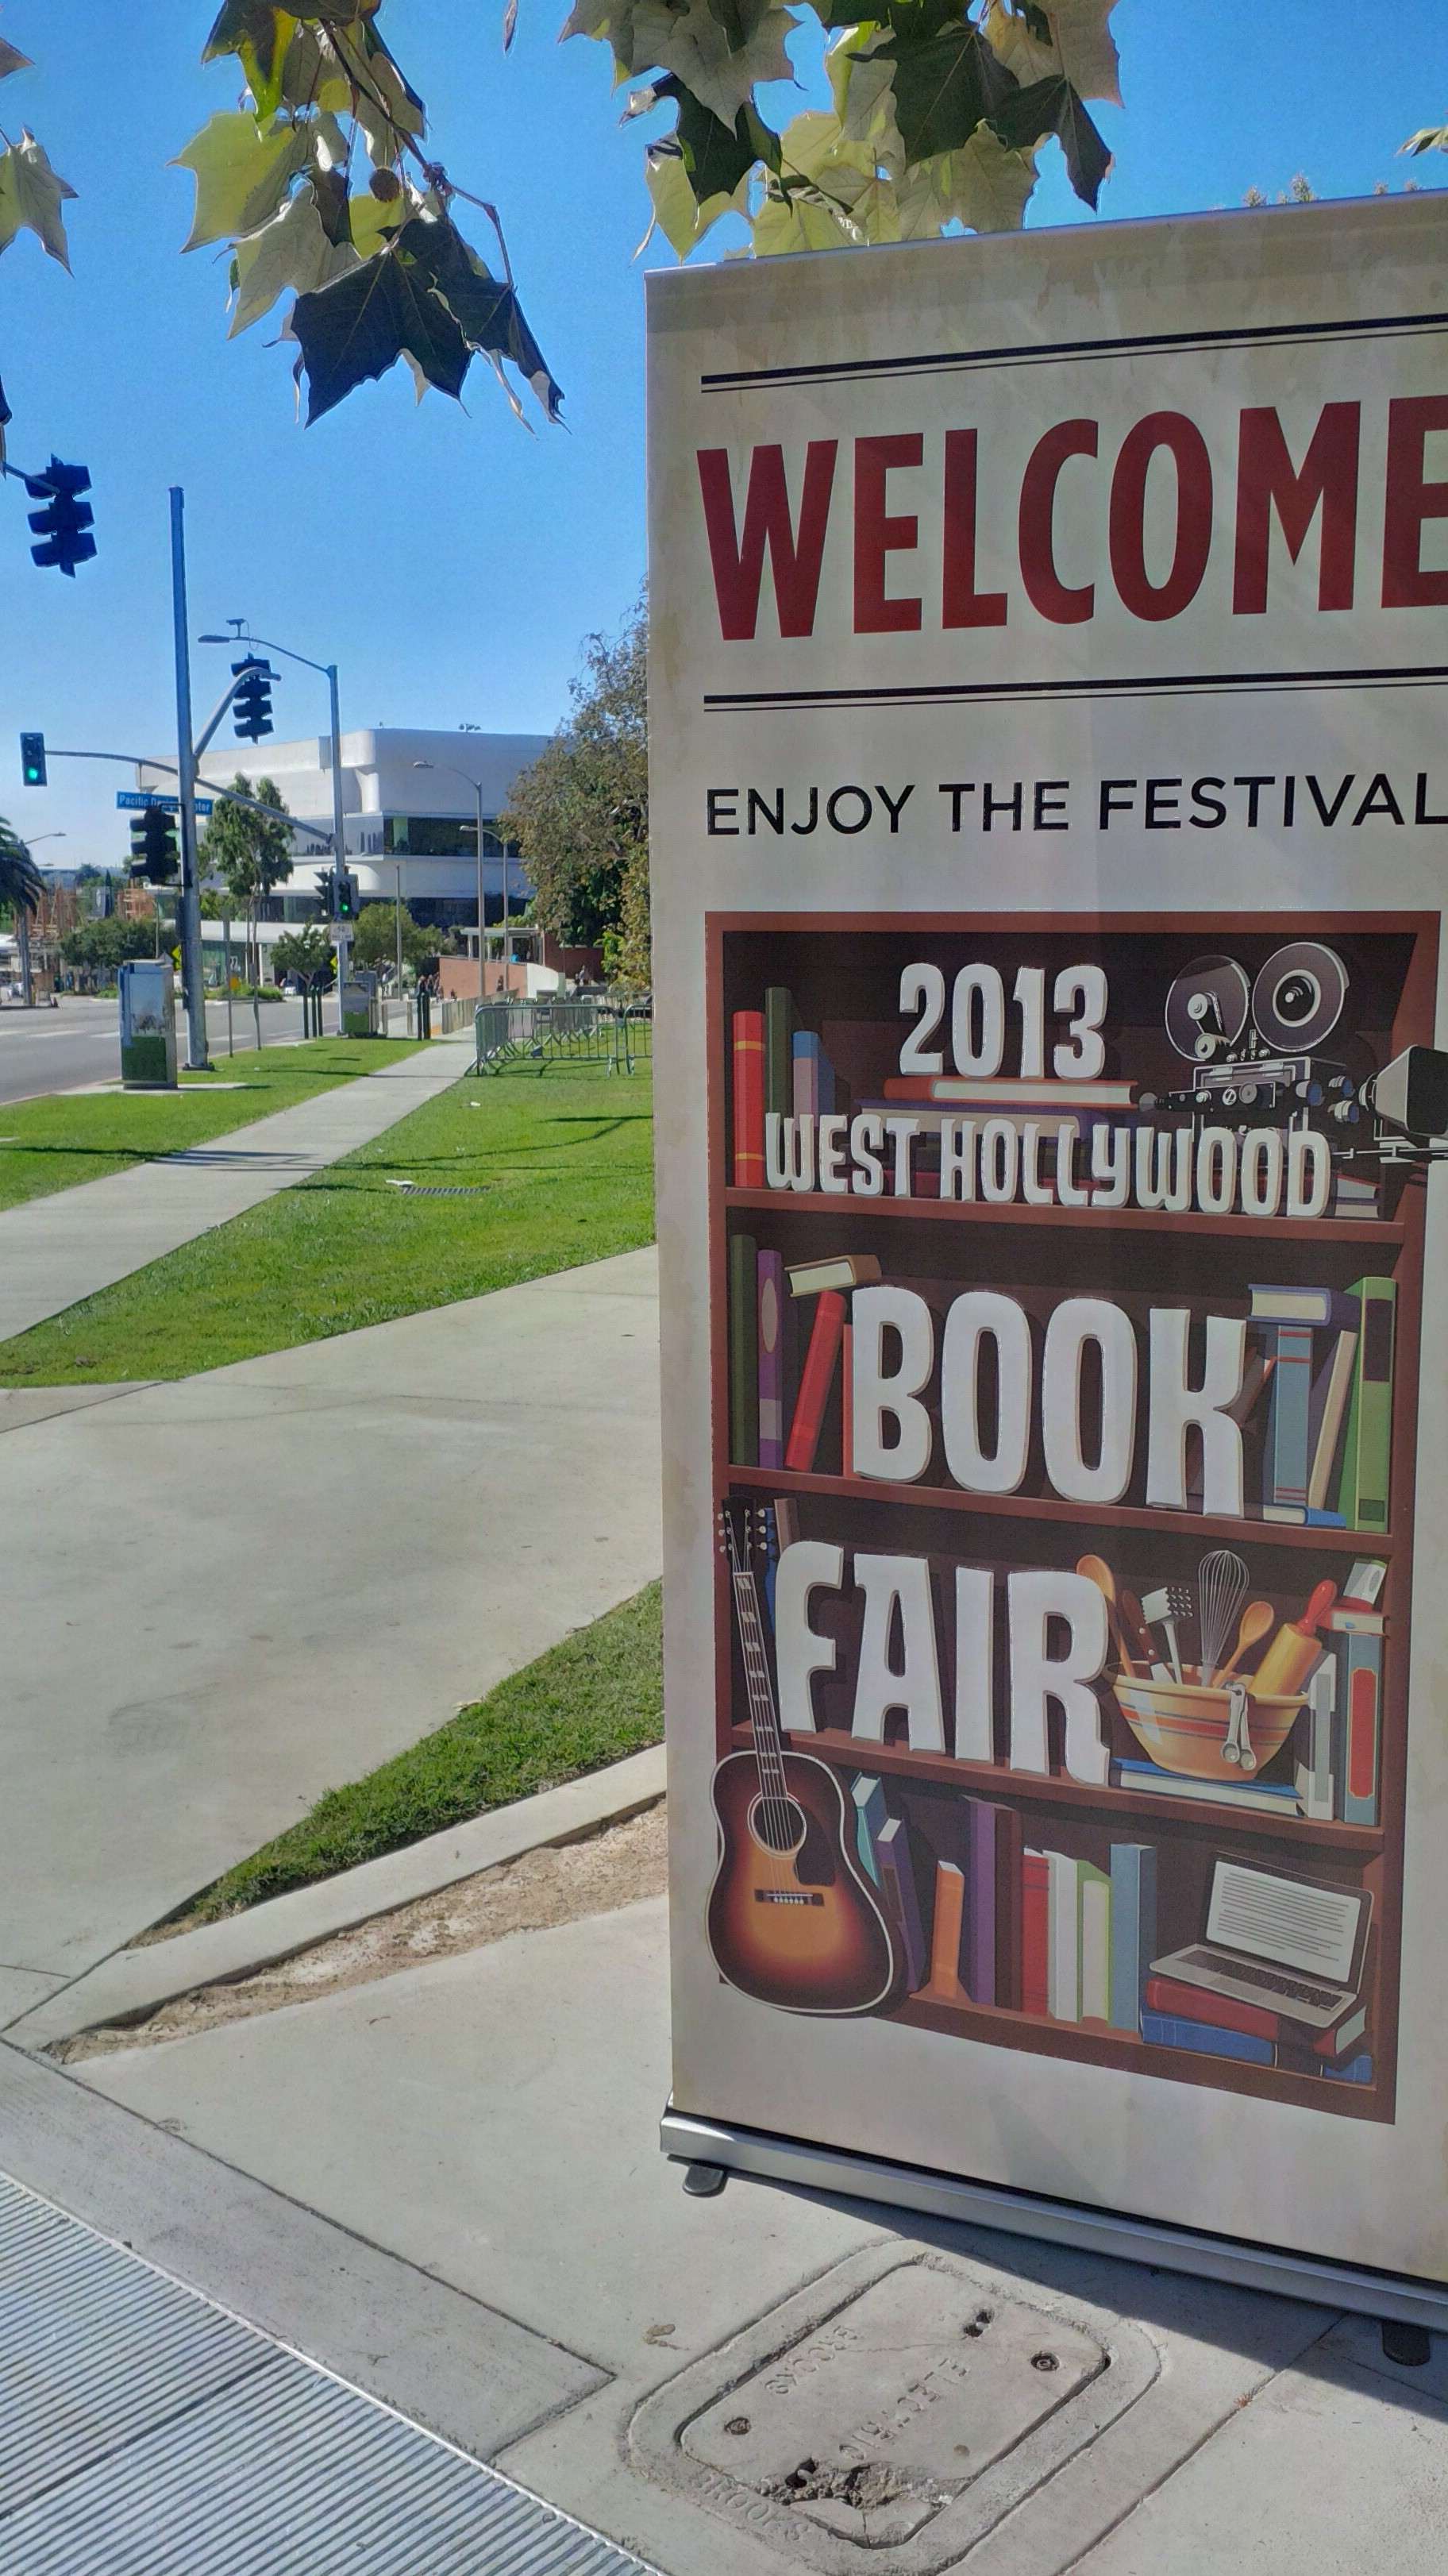 West Hollywood Book Fair (or is that OWLywood?)